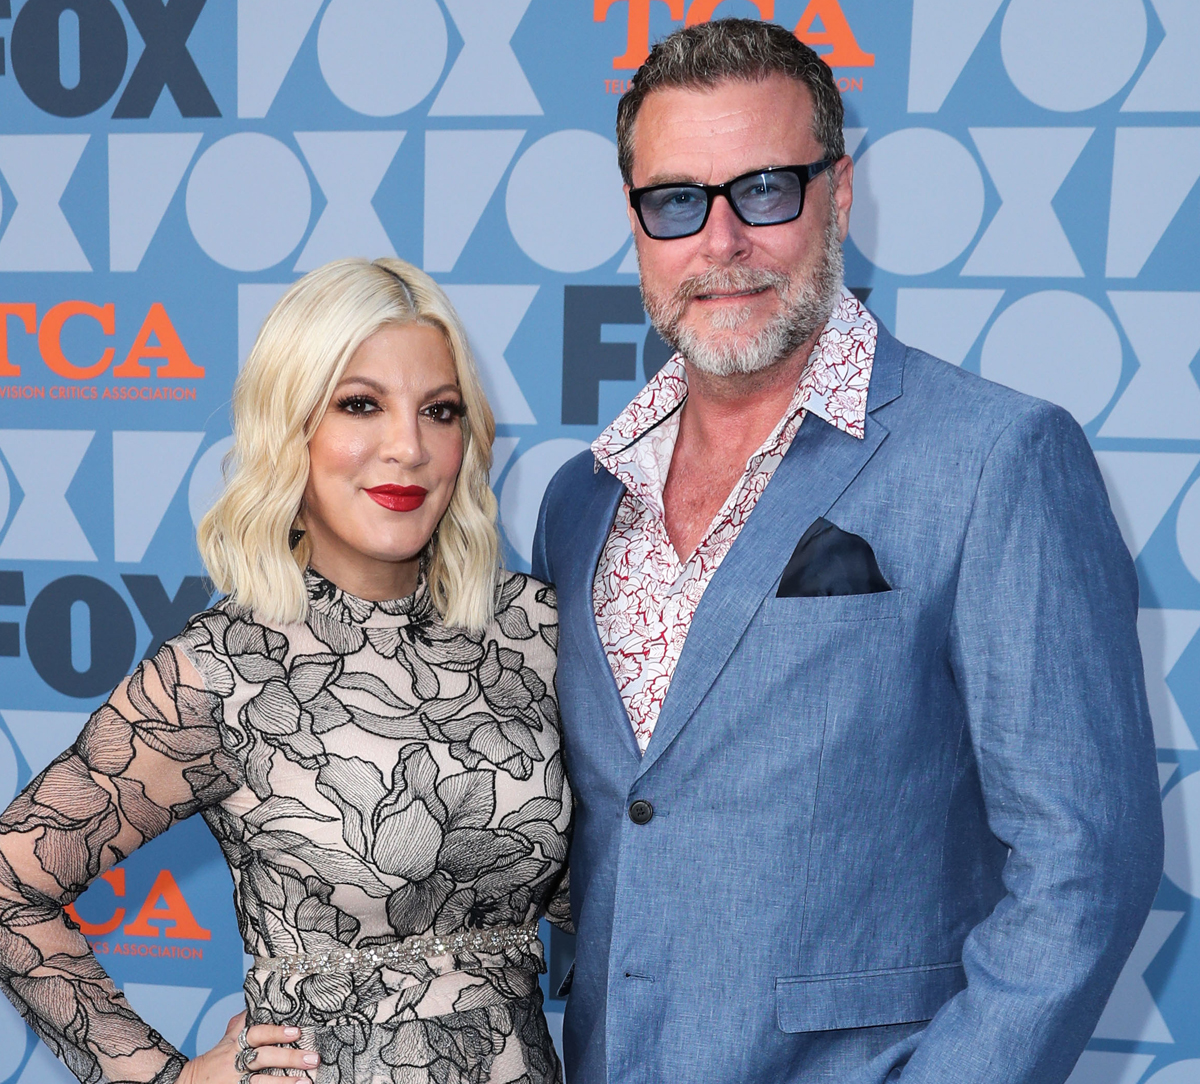 Tori Spelling 'Trapped' In Marriage After 'Really Serious' Fight With Dean McDermott!